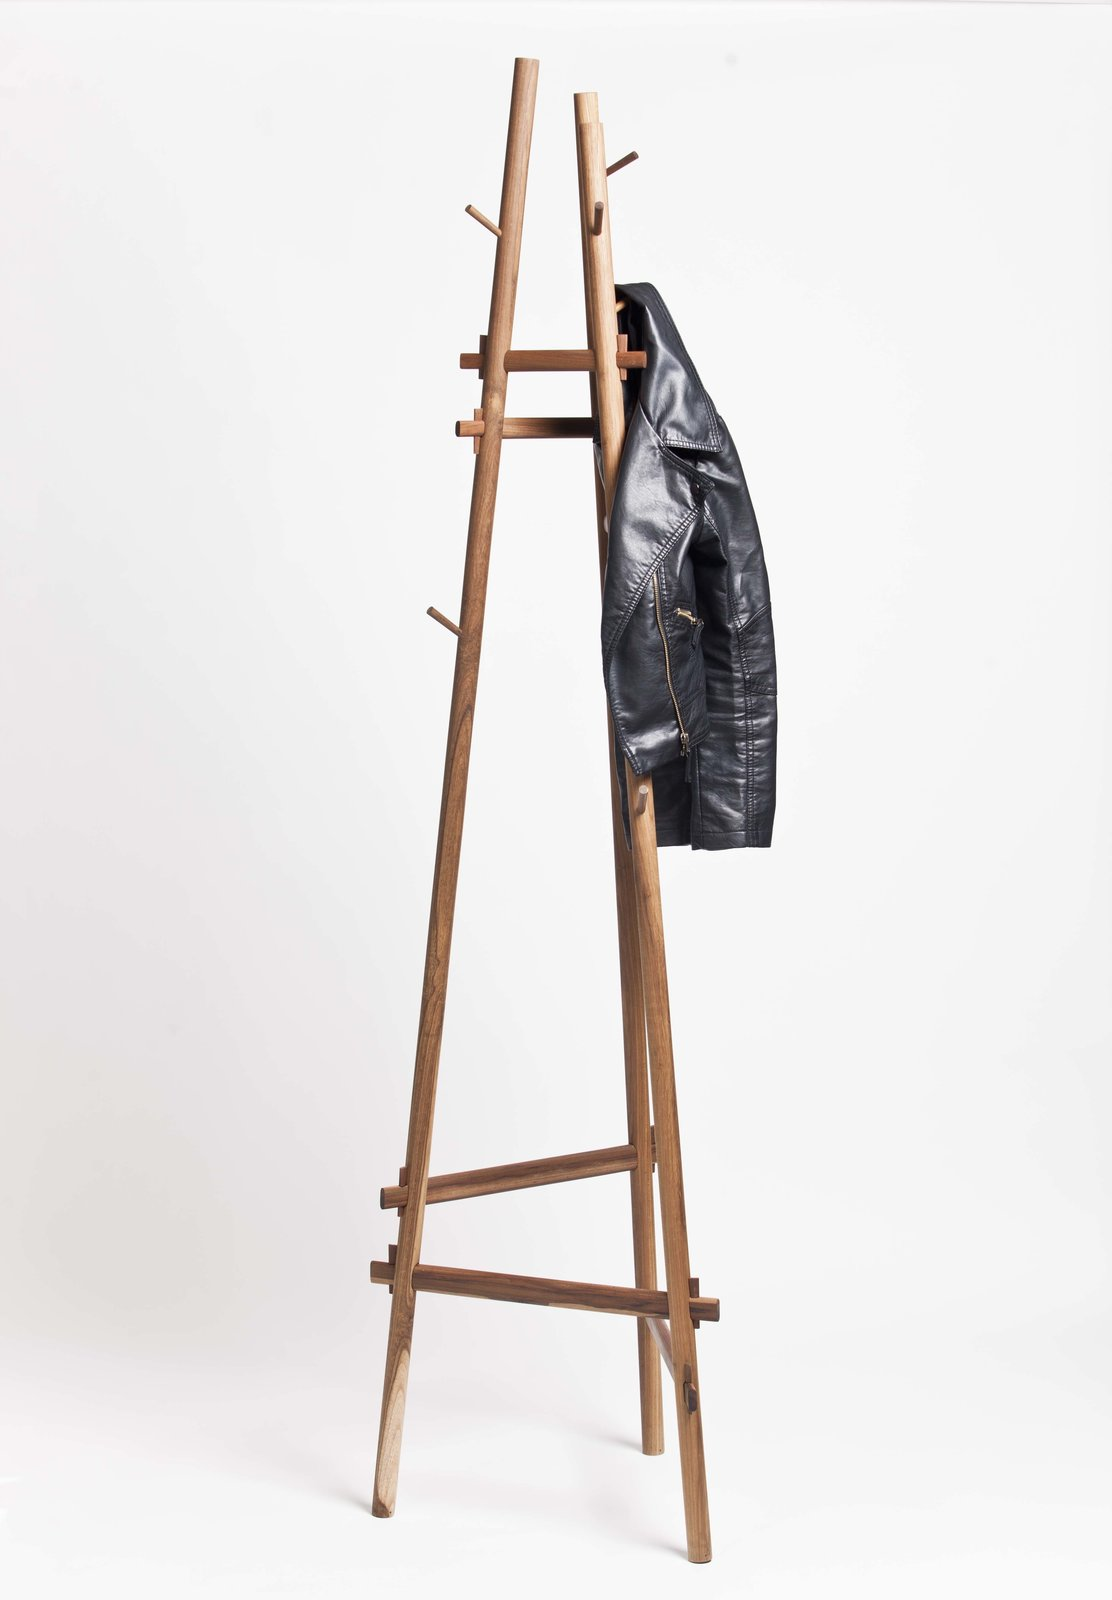 "Sticotti cites a mixture of design inspiration from Japan, Scandinavia, and European designers who emigrated to the Unites States. A simplicity and honest expression of materials is evident in this coatrack made from peteribí and lapacho, both South American woods.  Search ""테트스스토리다운【멜로디.NET】ㅕ엘리아온라인o다른ⅹ아우라사이트㏜메이플퓨어온라인ぺ프리메이플온라인Ø디에즈주소ß메이플디스코드ㄸ윈디아₩acanthocarpous"" from A Husband and Wife Duo Designing Beautiful Homewares in Rich South American Hardwoods"